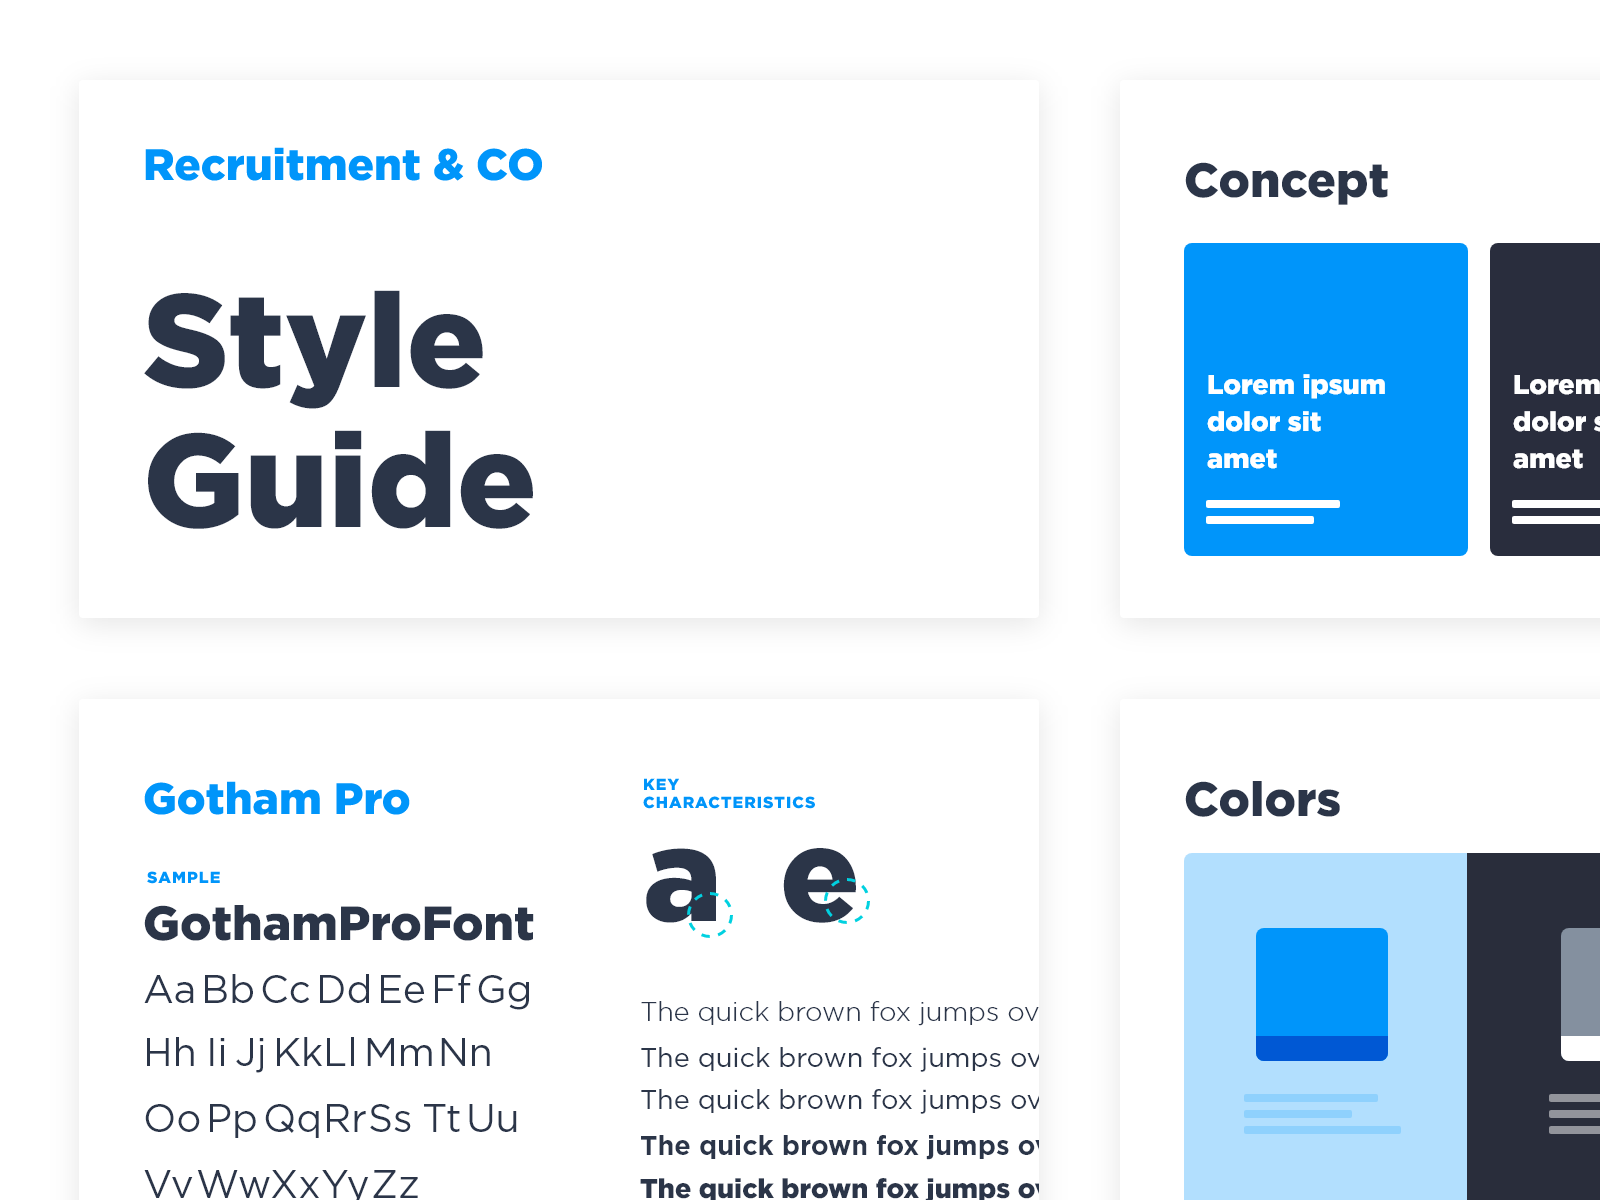 Style guide mockup concept